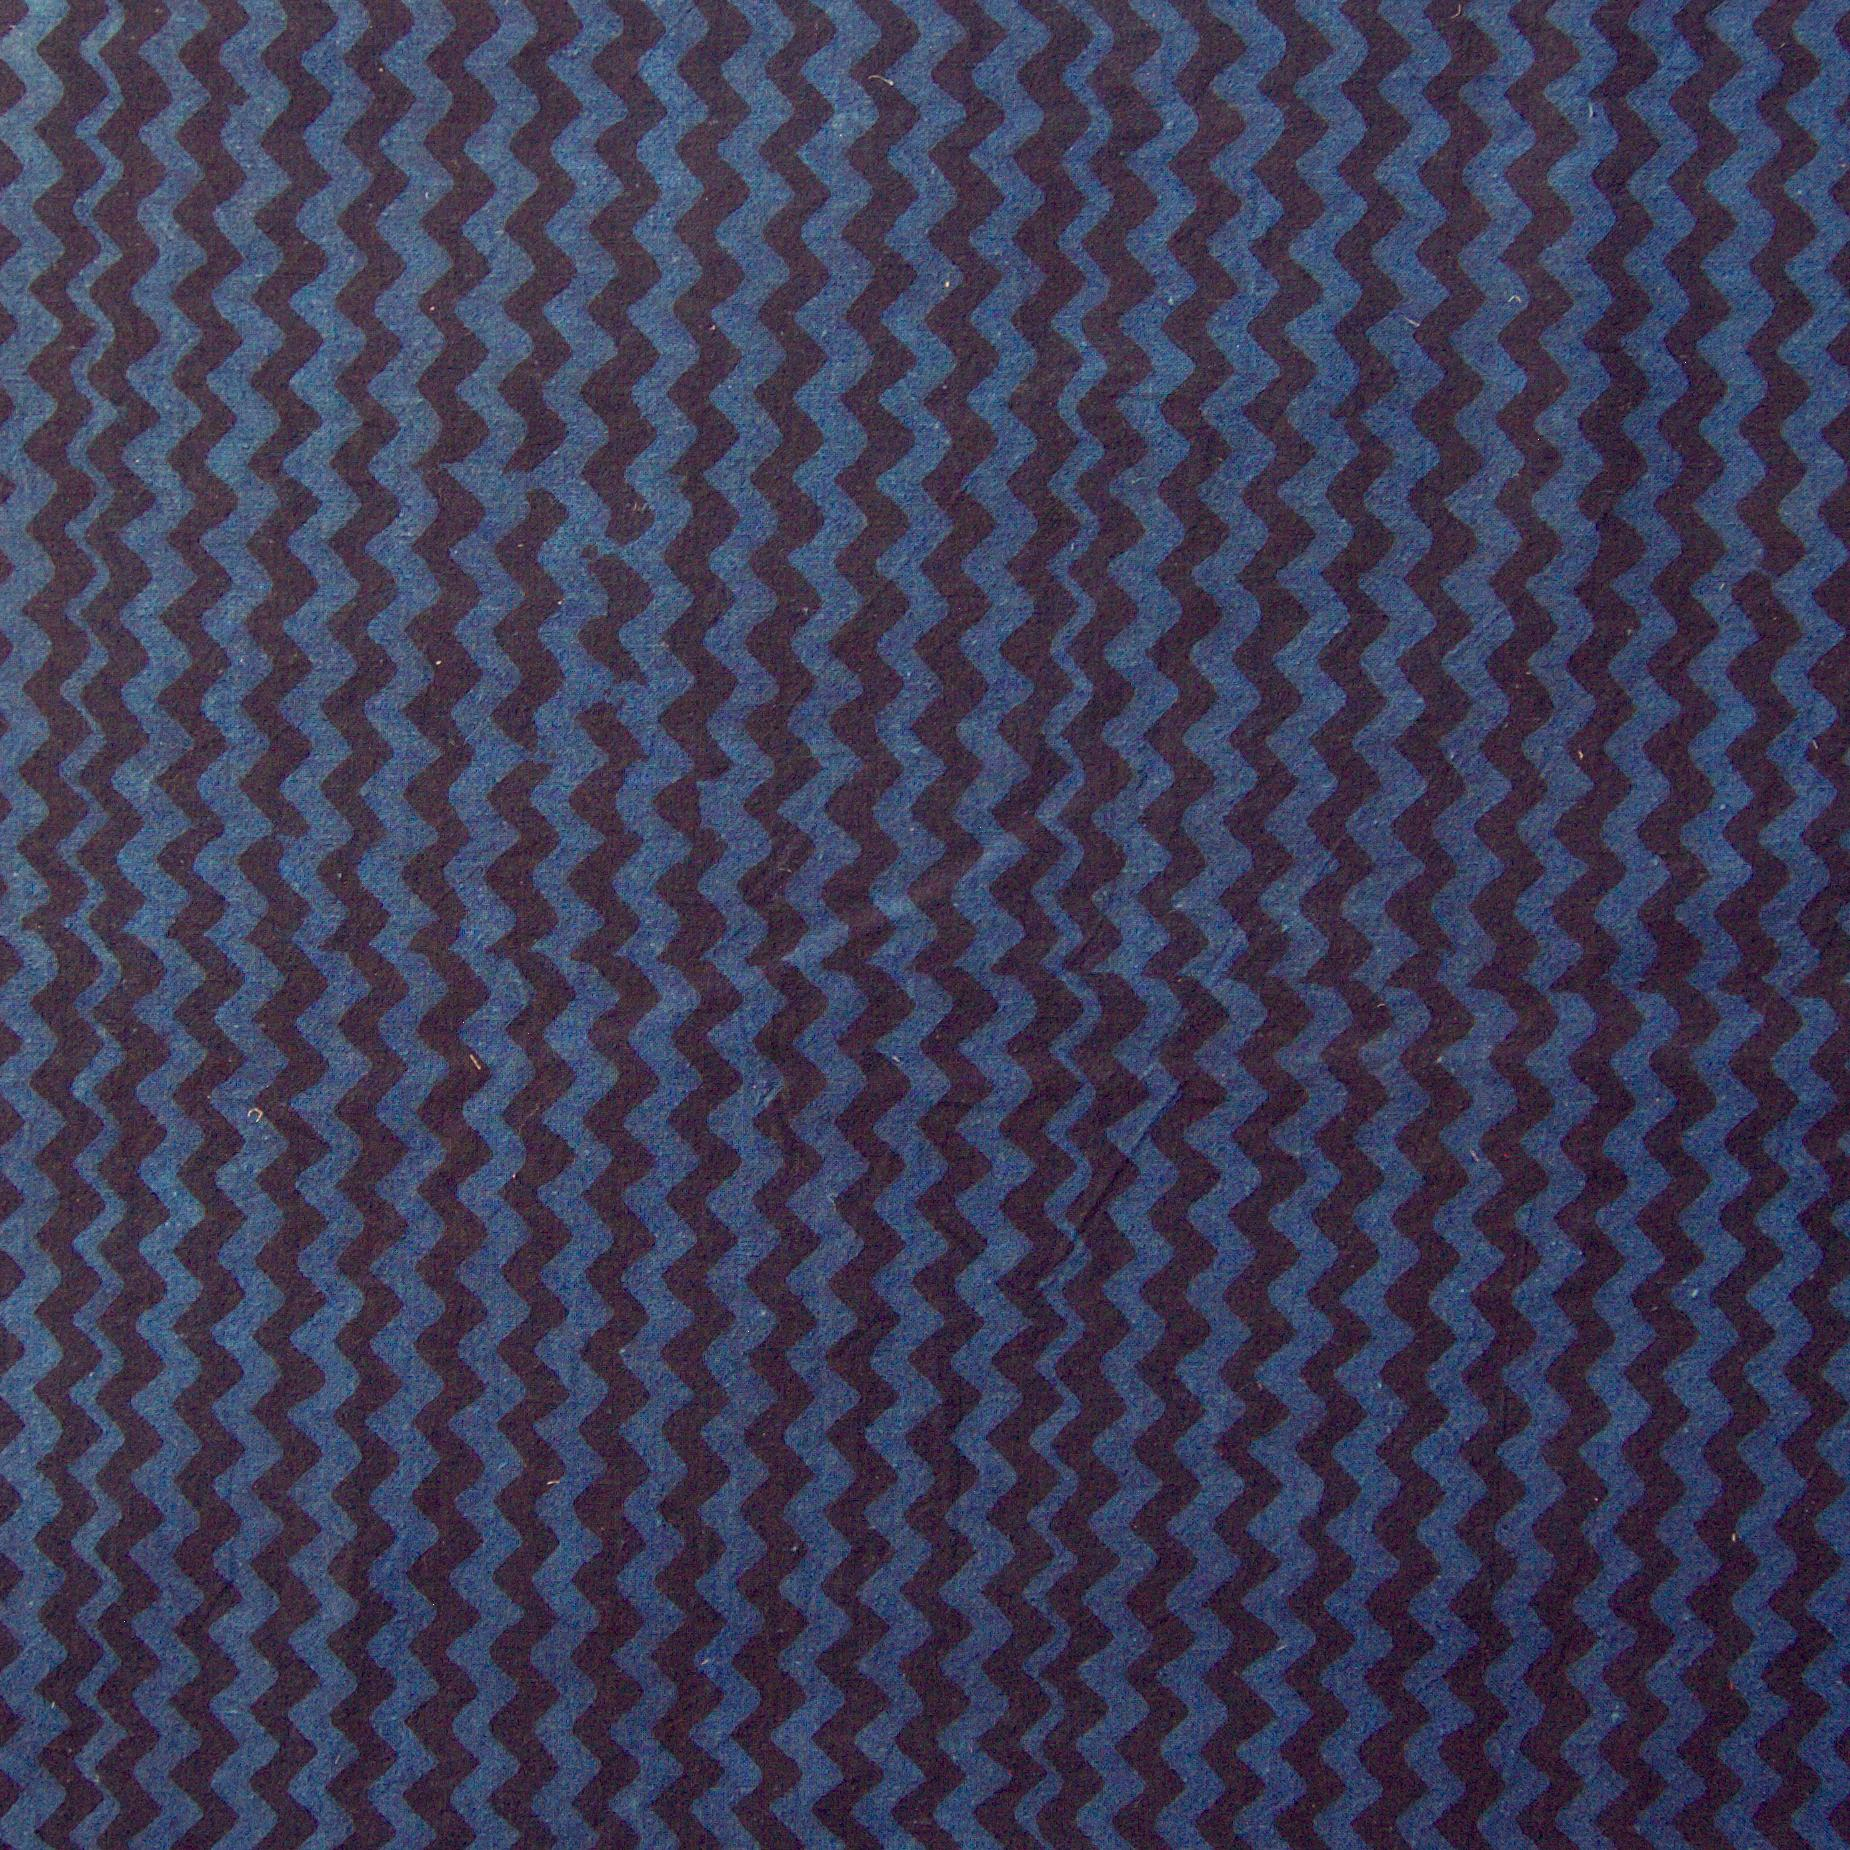 100% Block-Printed Cotton Fabric From India- Ajrak - Indigo Black Zig Zag Print - Flat